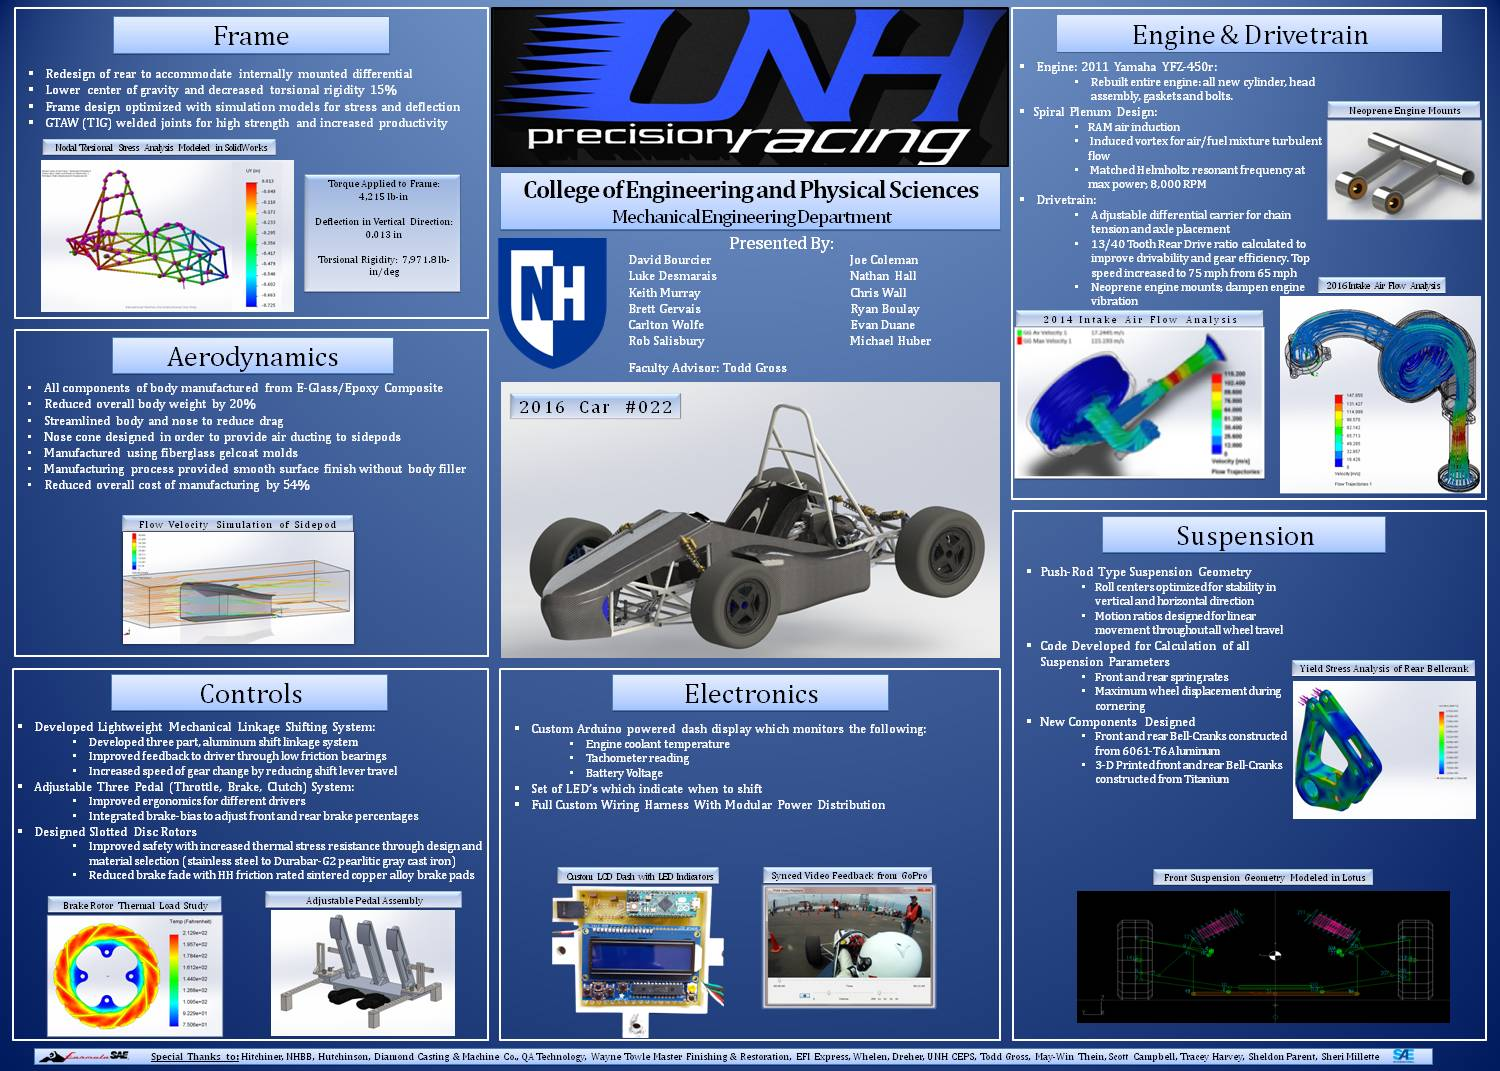 Unh Precision Racing #22 by dak74